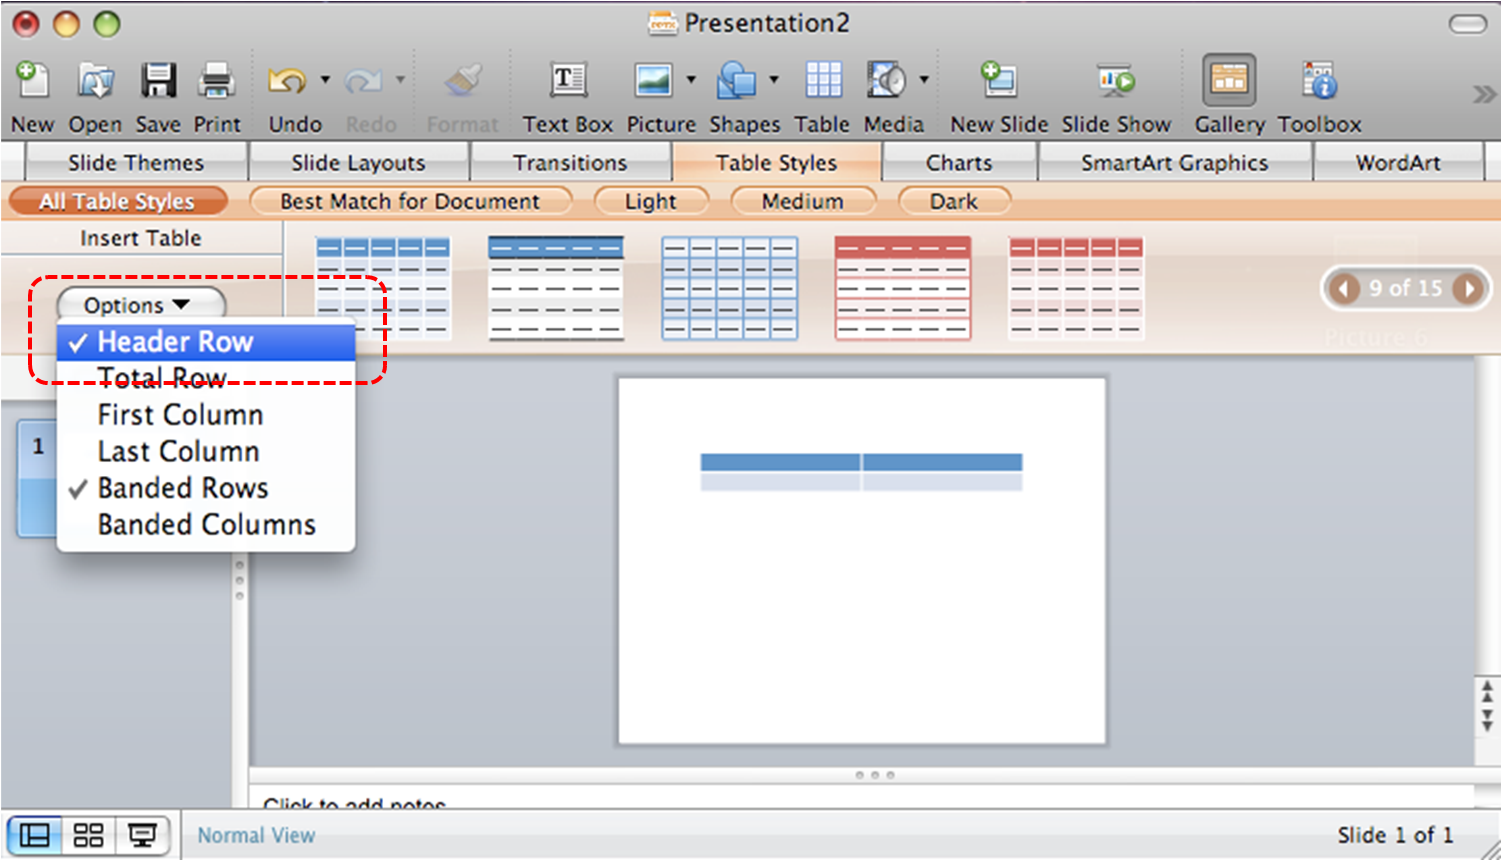 Image demonstrates location of Header Row Option in Table Styles section above document pane.